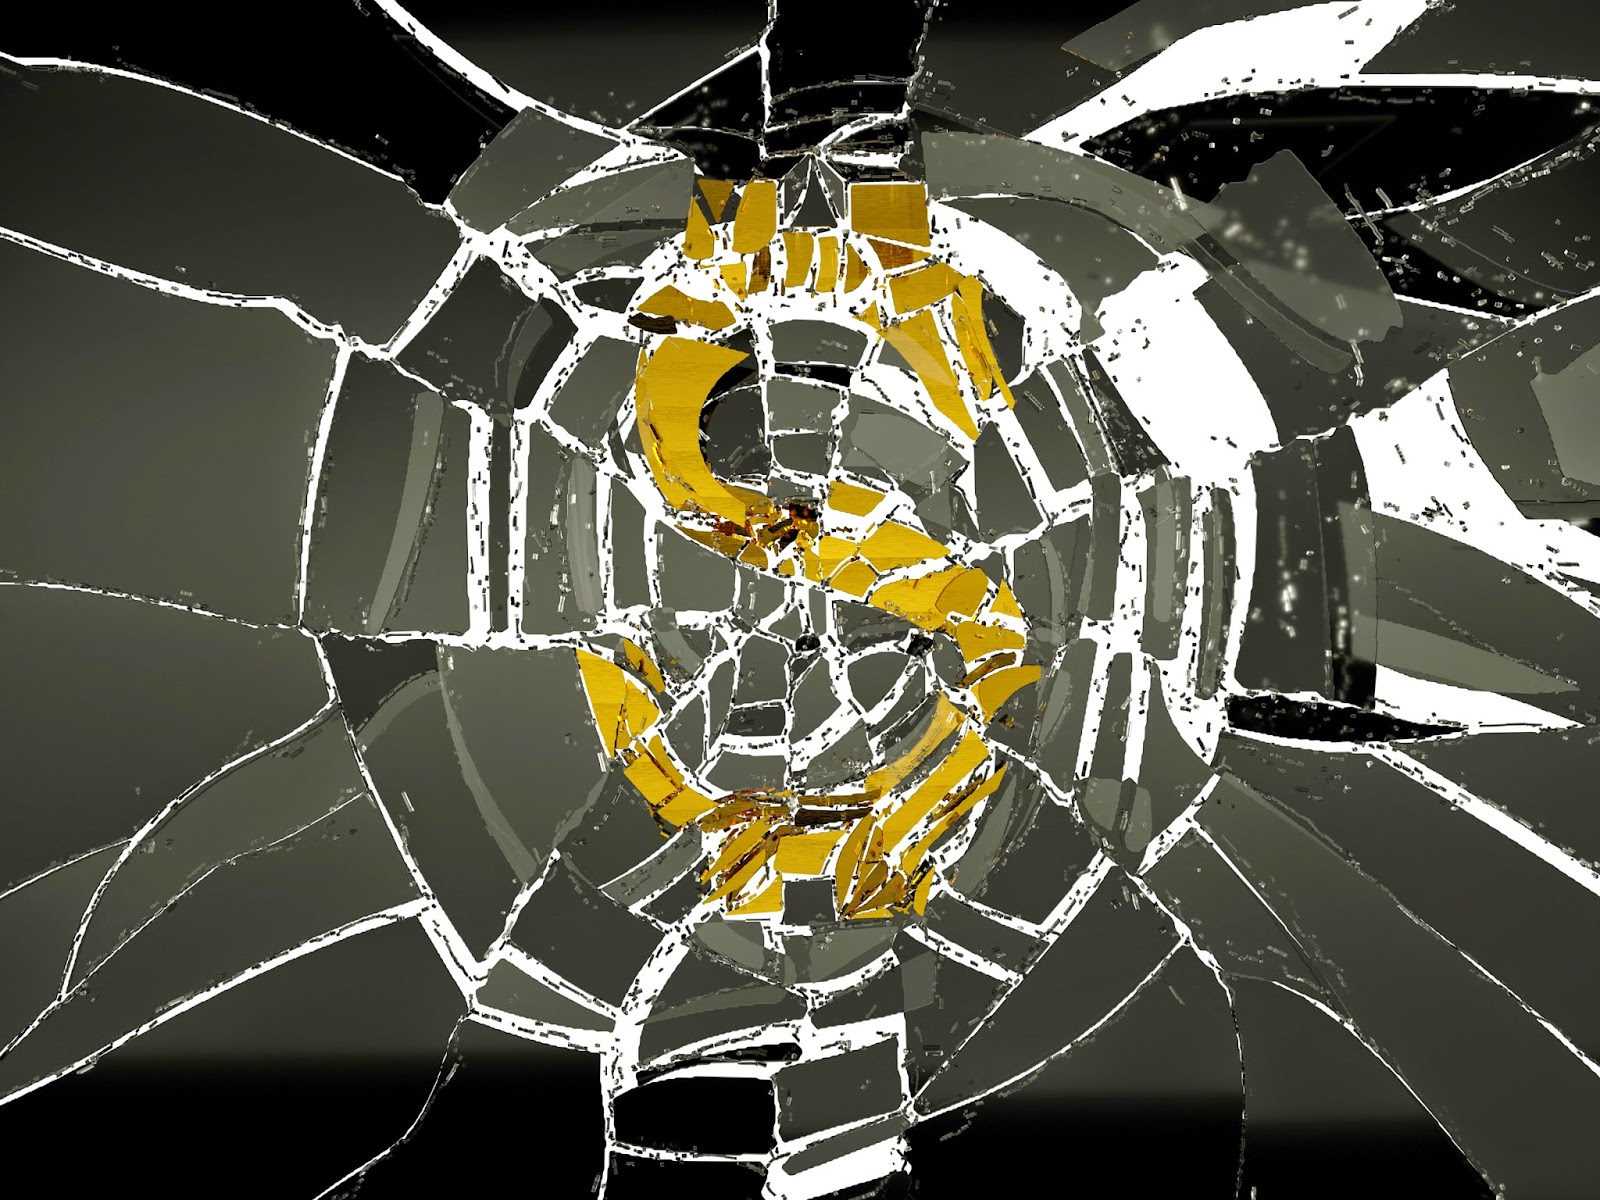 Shattered glass and dollar sign